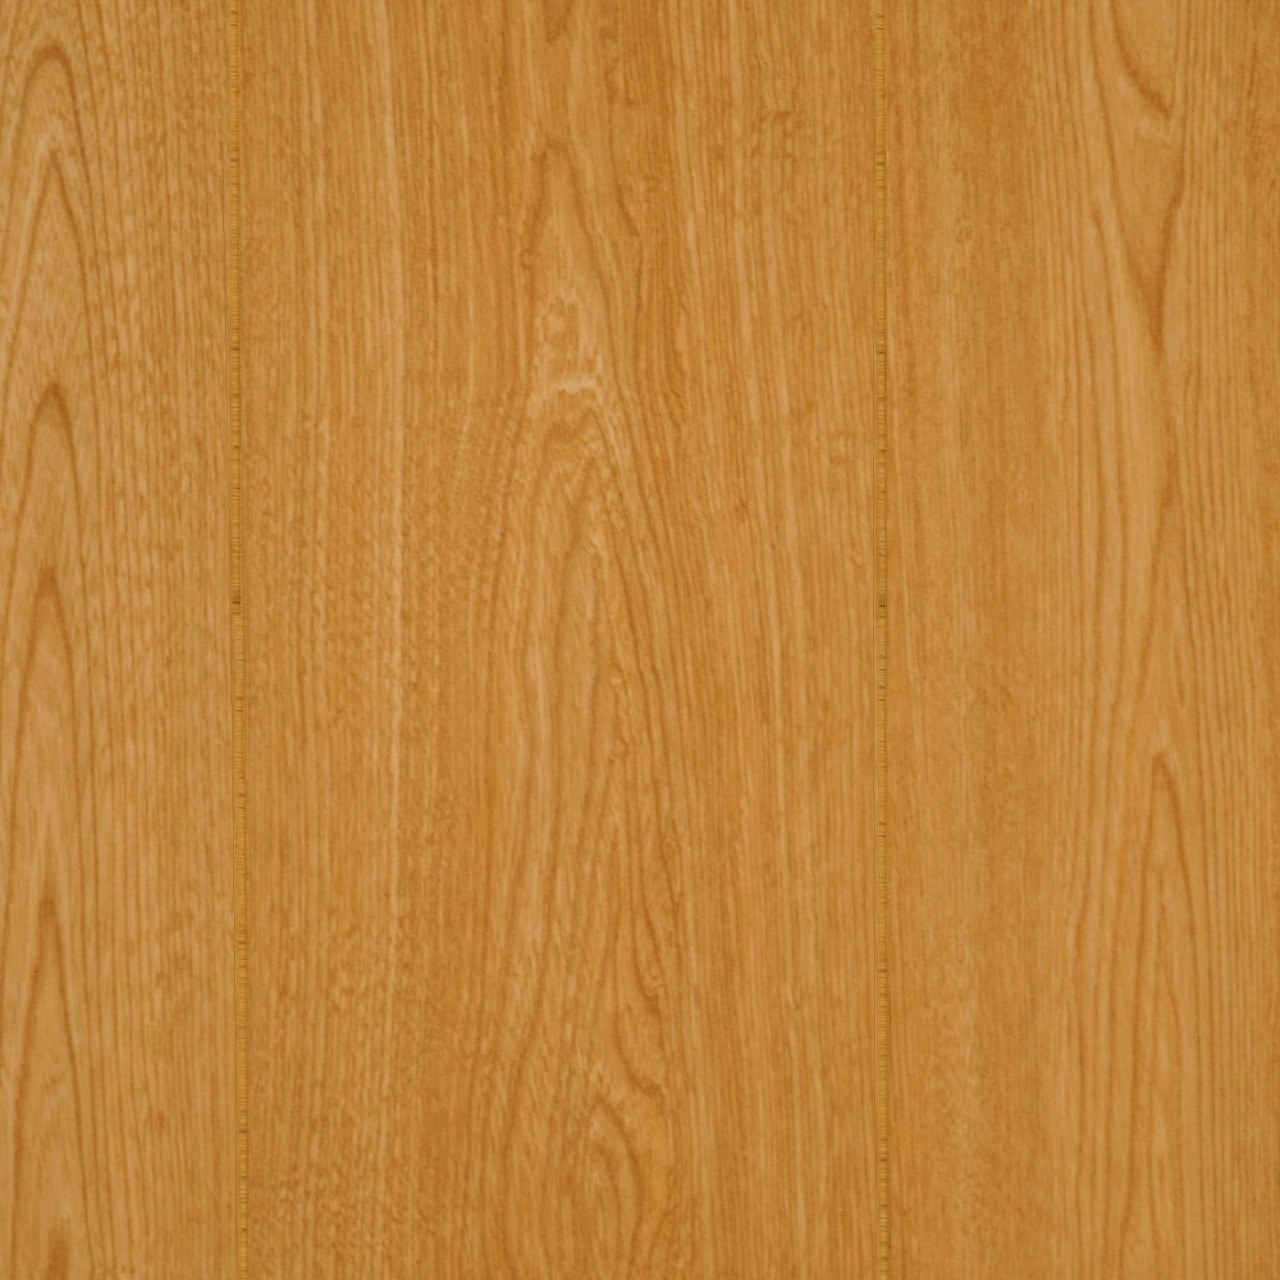 Wood Paneling Empire Oak Random Plank Panels